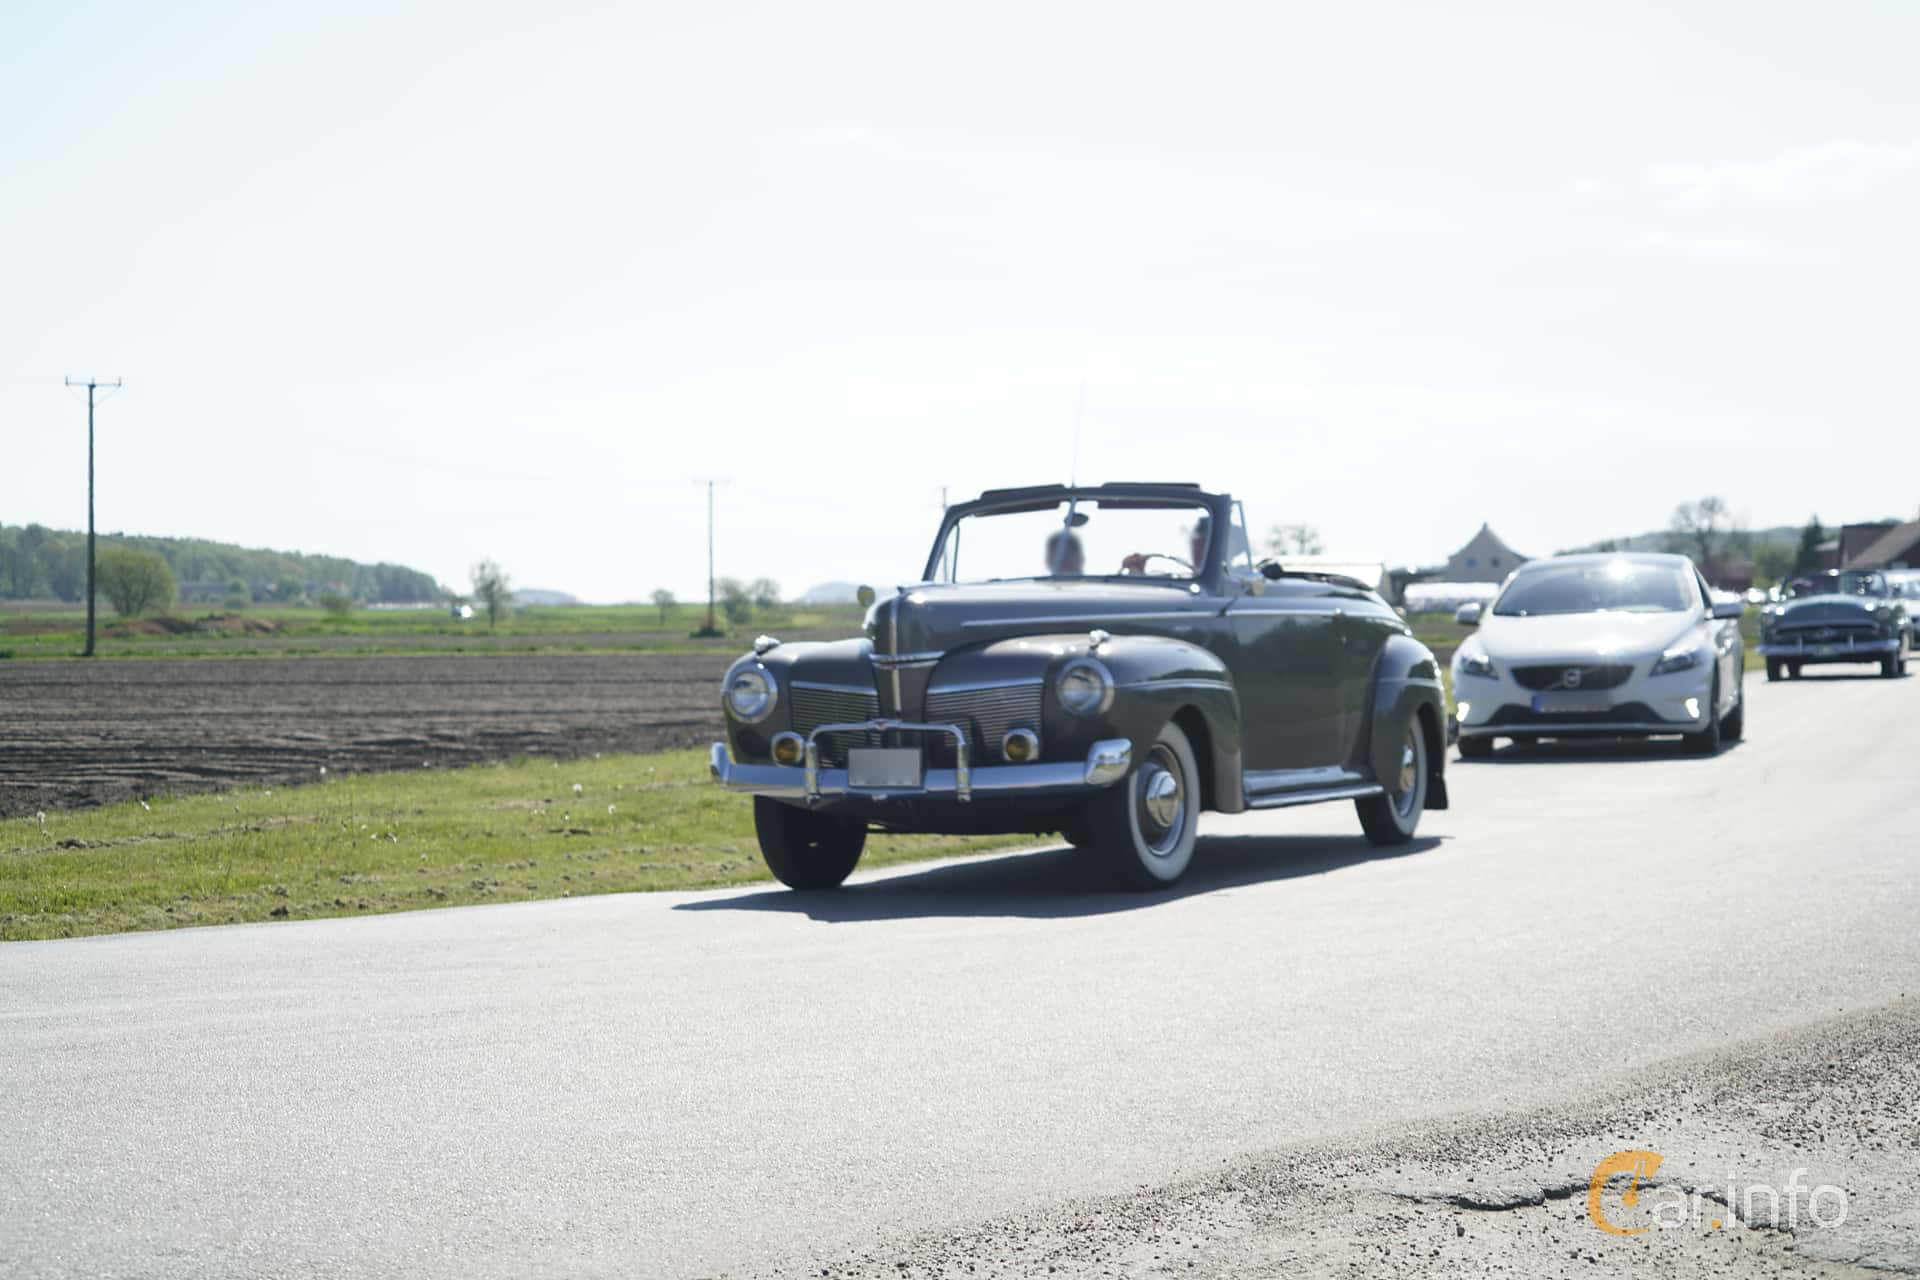 3 Images Of Mercury Eight Convertible 36 Manual 95hp 1941 By 4 Door Sedan Front Side 95ps At Tjolholm Classic